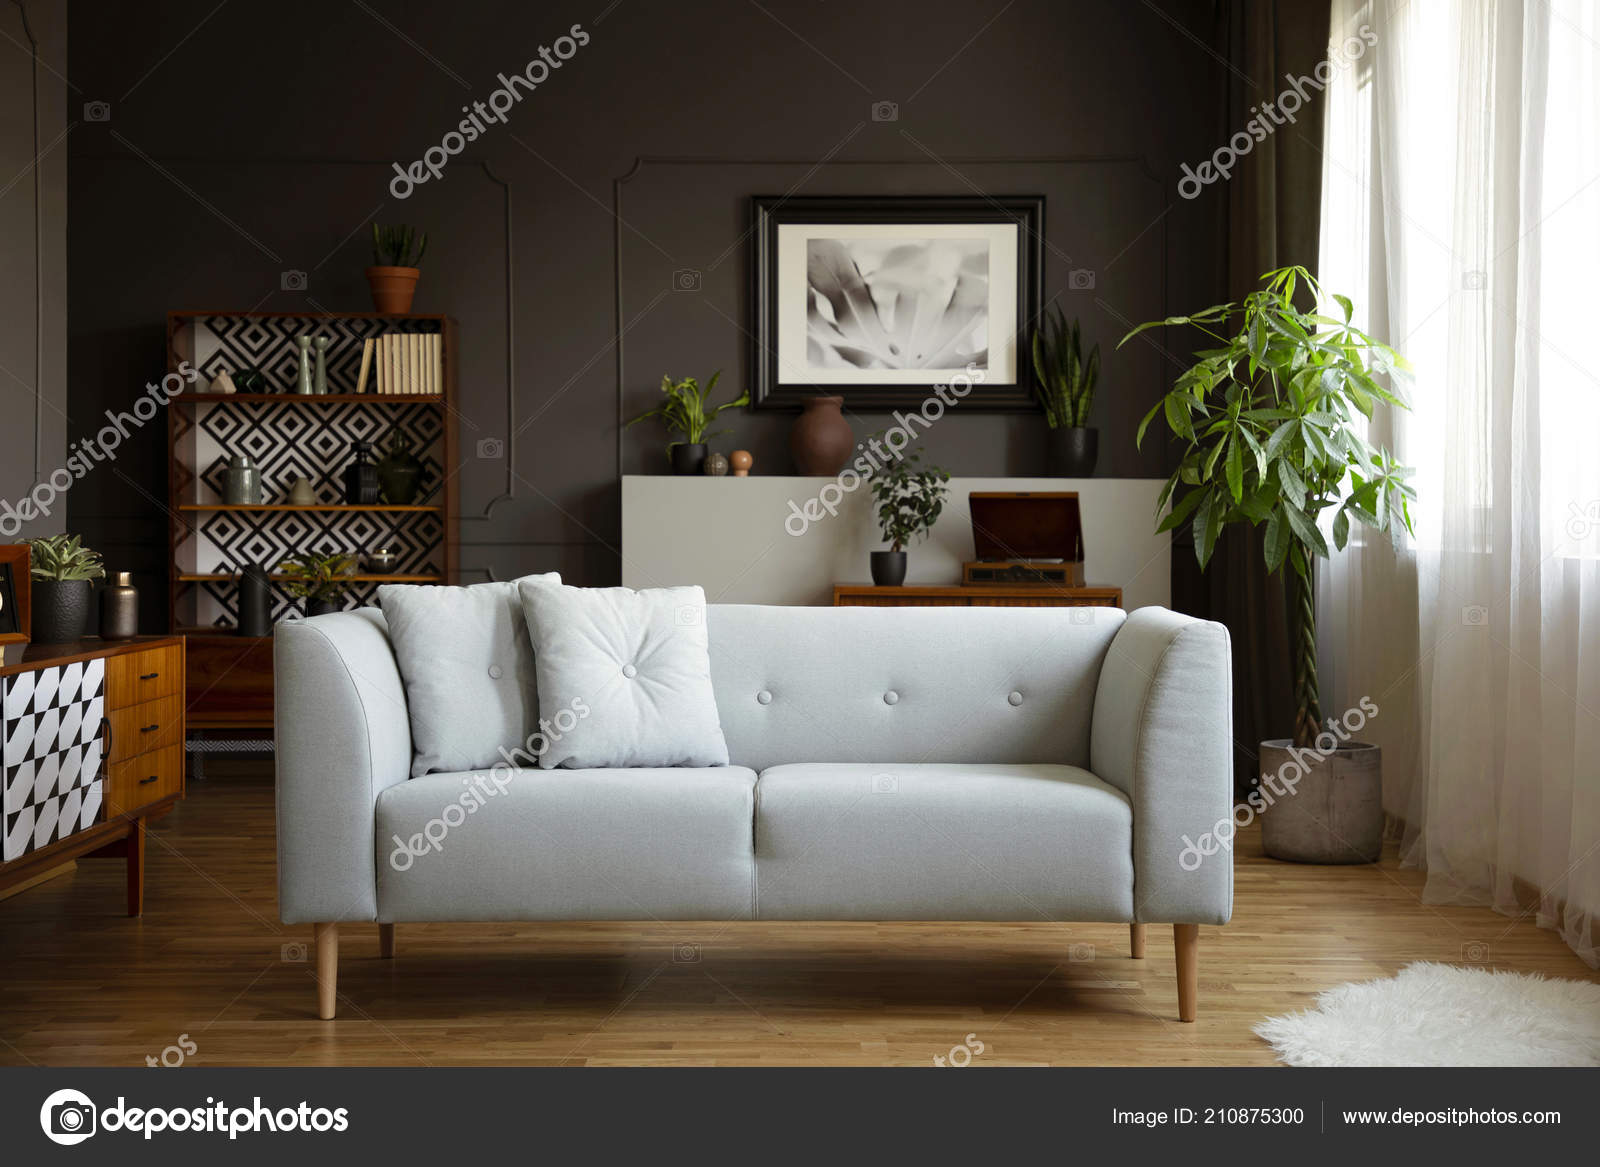 Tremendous Grey Couch Pillows Bright Vintage Living Room Interior Unemploymentrelief Wooden Chair Designs For Living Room Unemploymentrelieforg